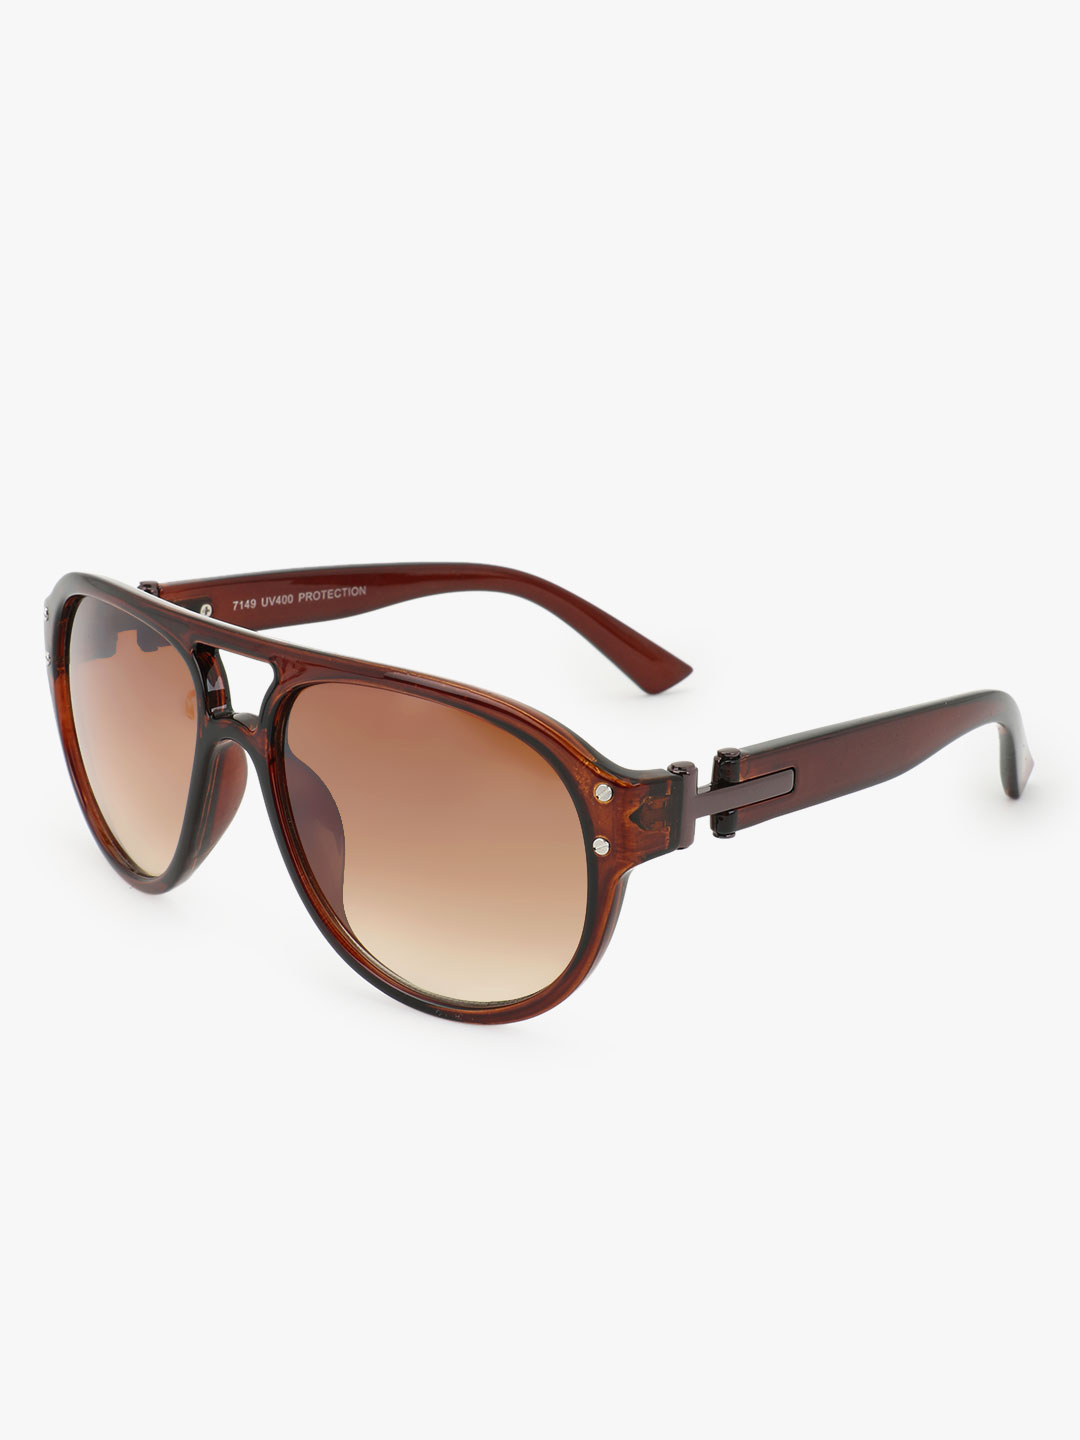 Kindred Brown Double Bridge Pilot Sunglasses 1